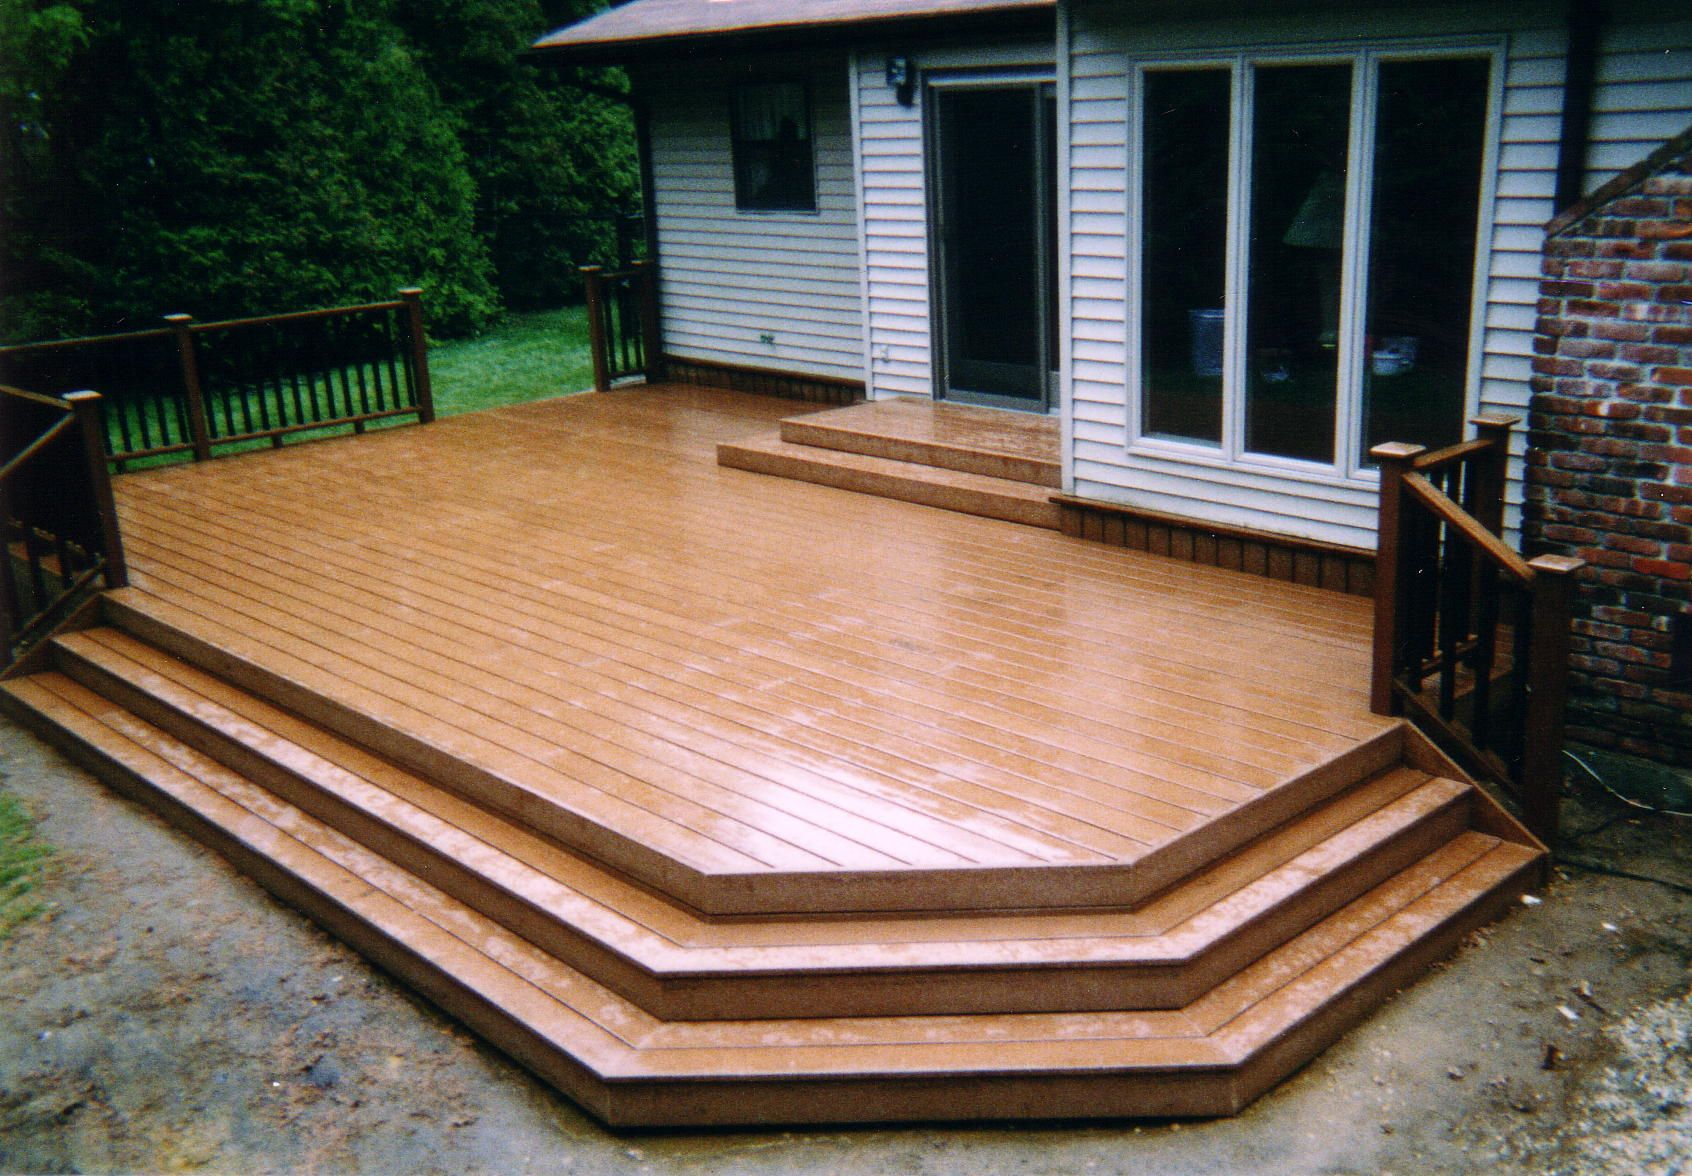 Exceptional Pictures Of Decks For Small Back Yards | Free Images Of Small Decks Offer  Decks Patios